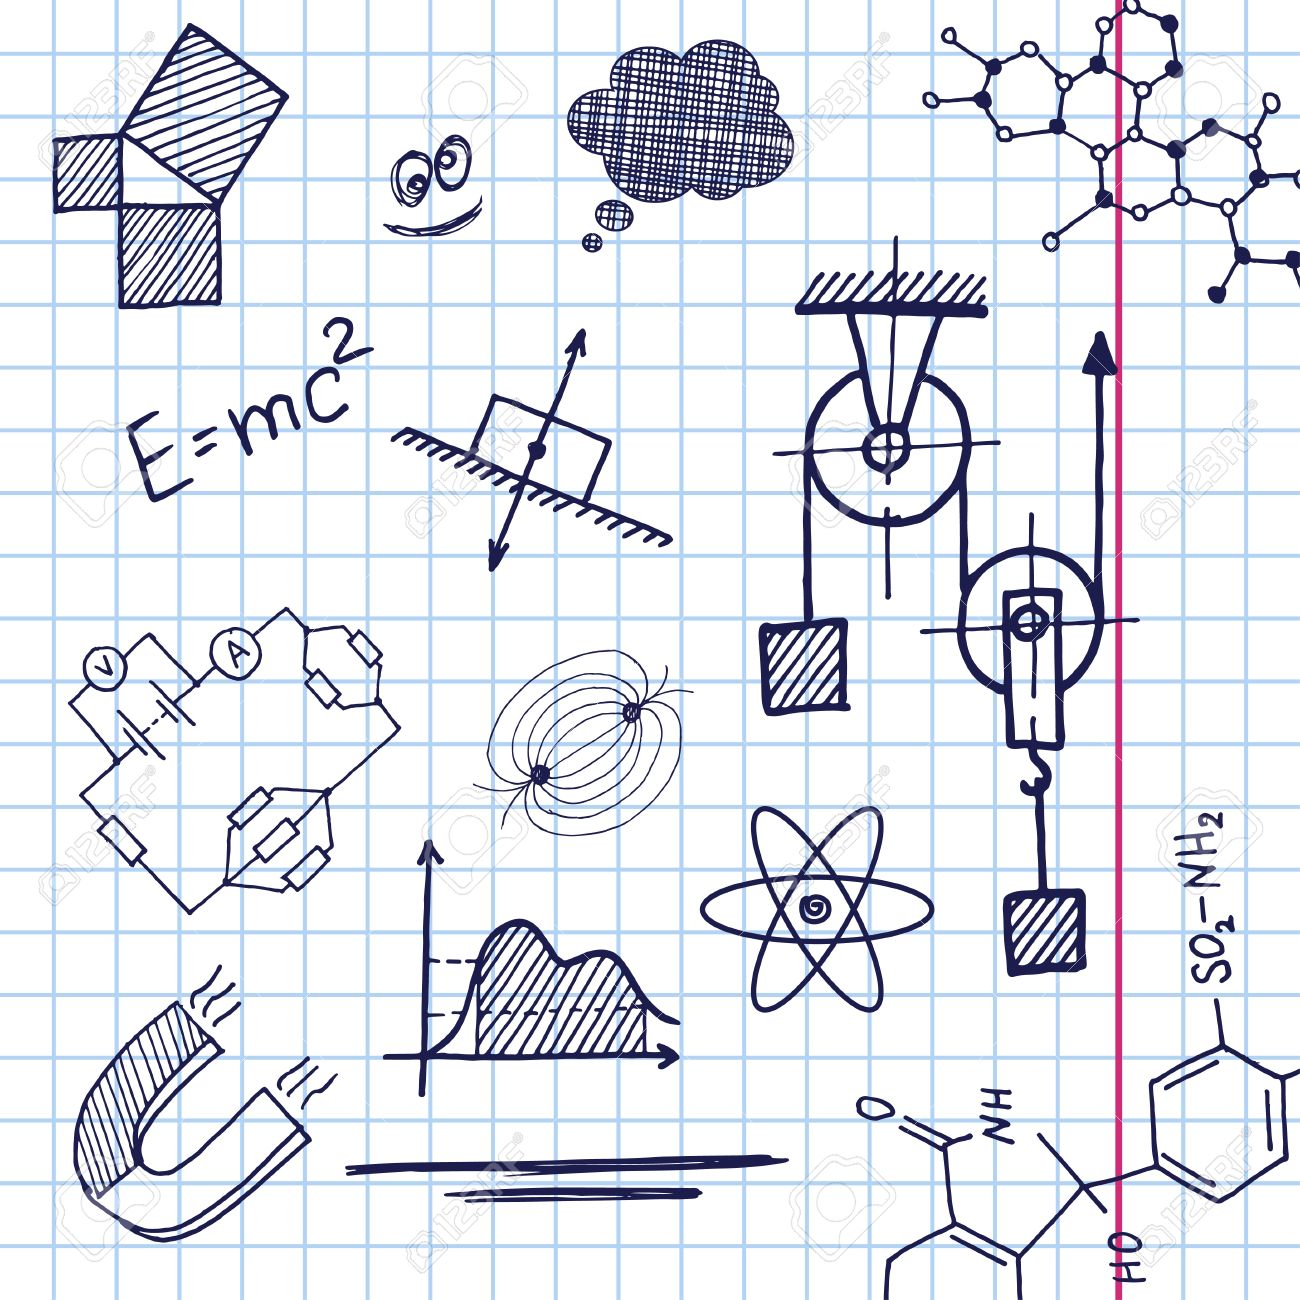 Physics Drawing at GetDrawings.com | Free for personal use Physics ...